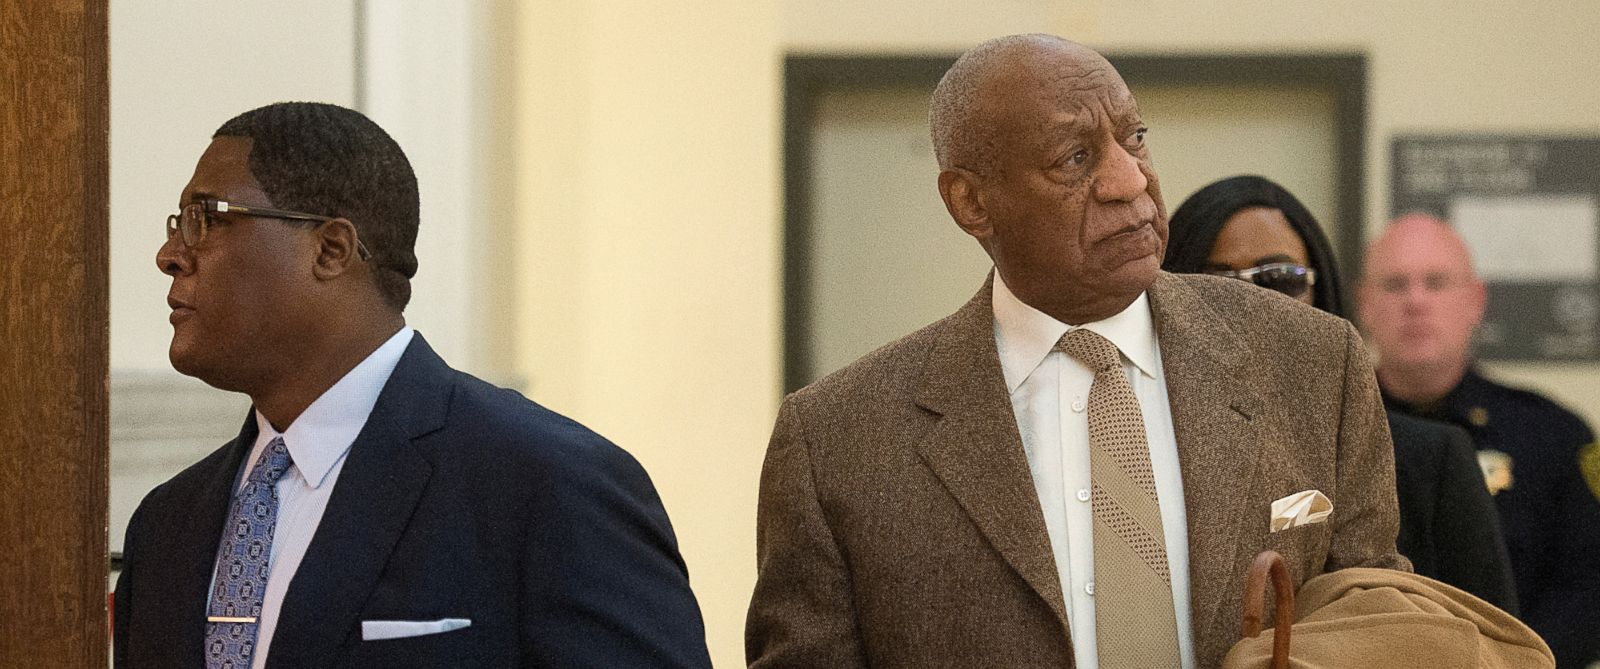 PHOTO: Bill Cosby re-enters Montgomery County Courthouse after a break during the second day of his pre-trial hearing in his sexual assault case in Norristown, Pennsylvania, Dec. 14, 2016.